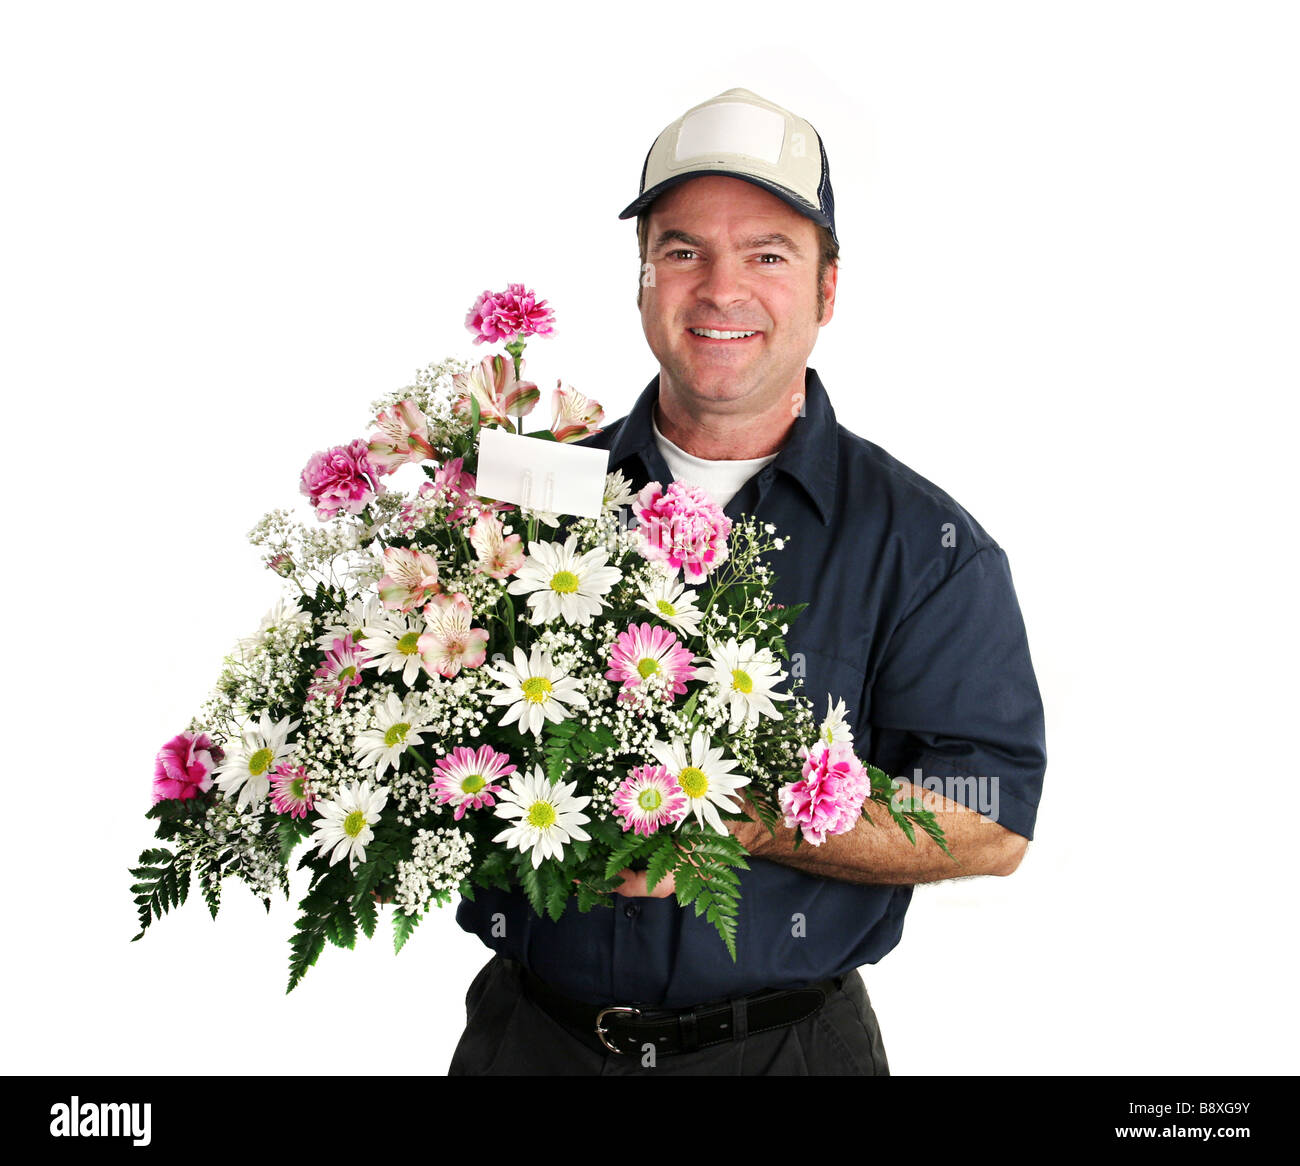 Flower Delivery Guy